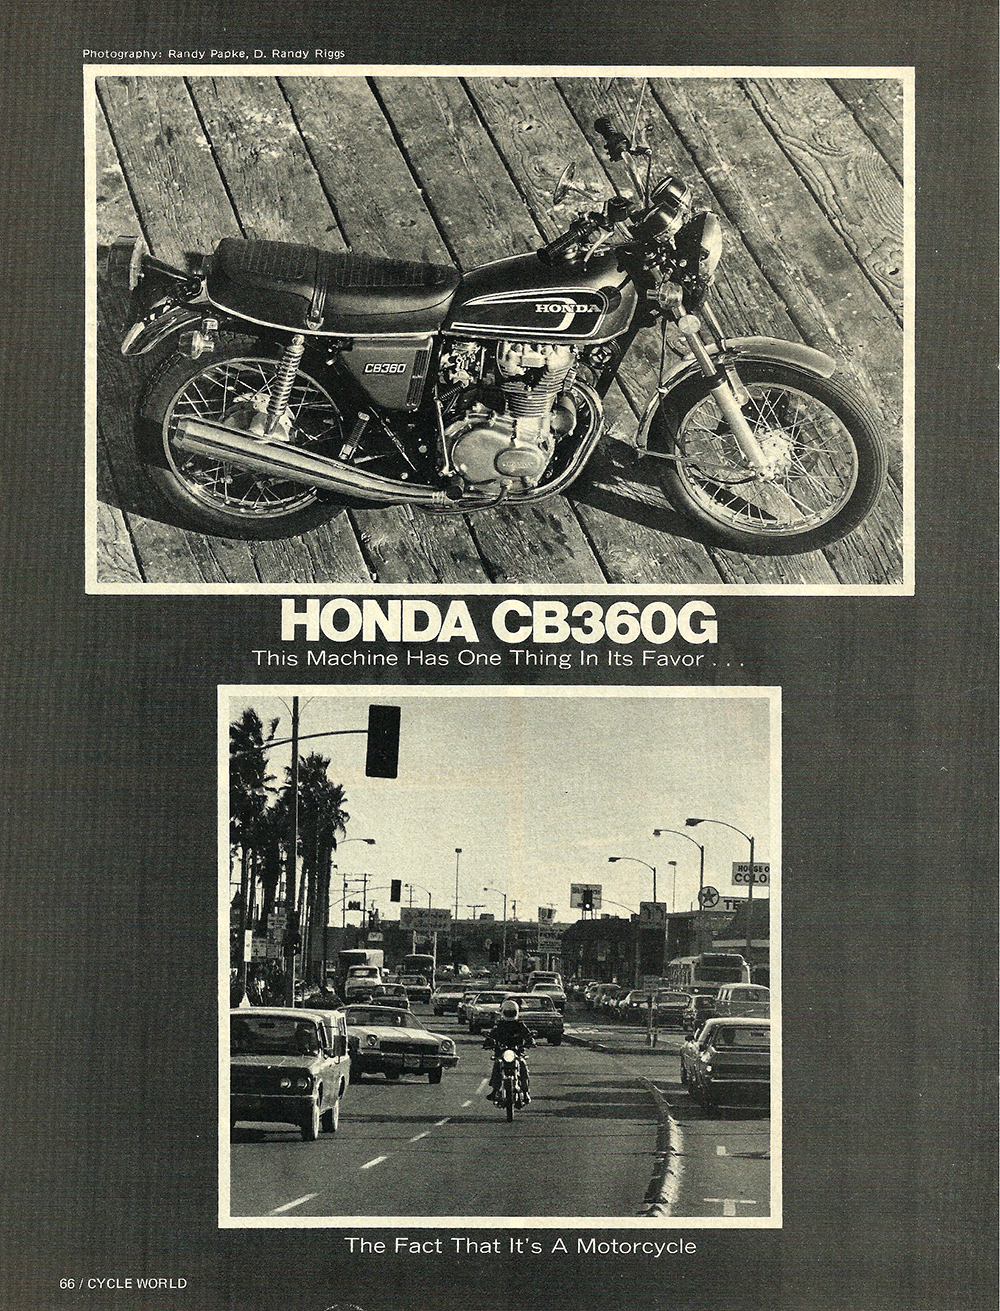 1974 Honda CB360G road test 1.jpg